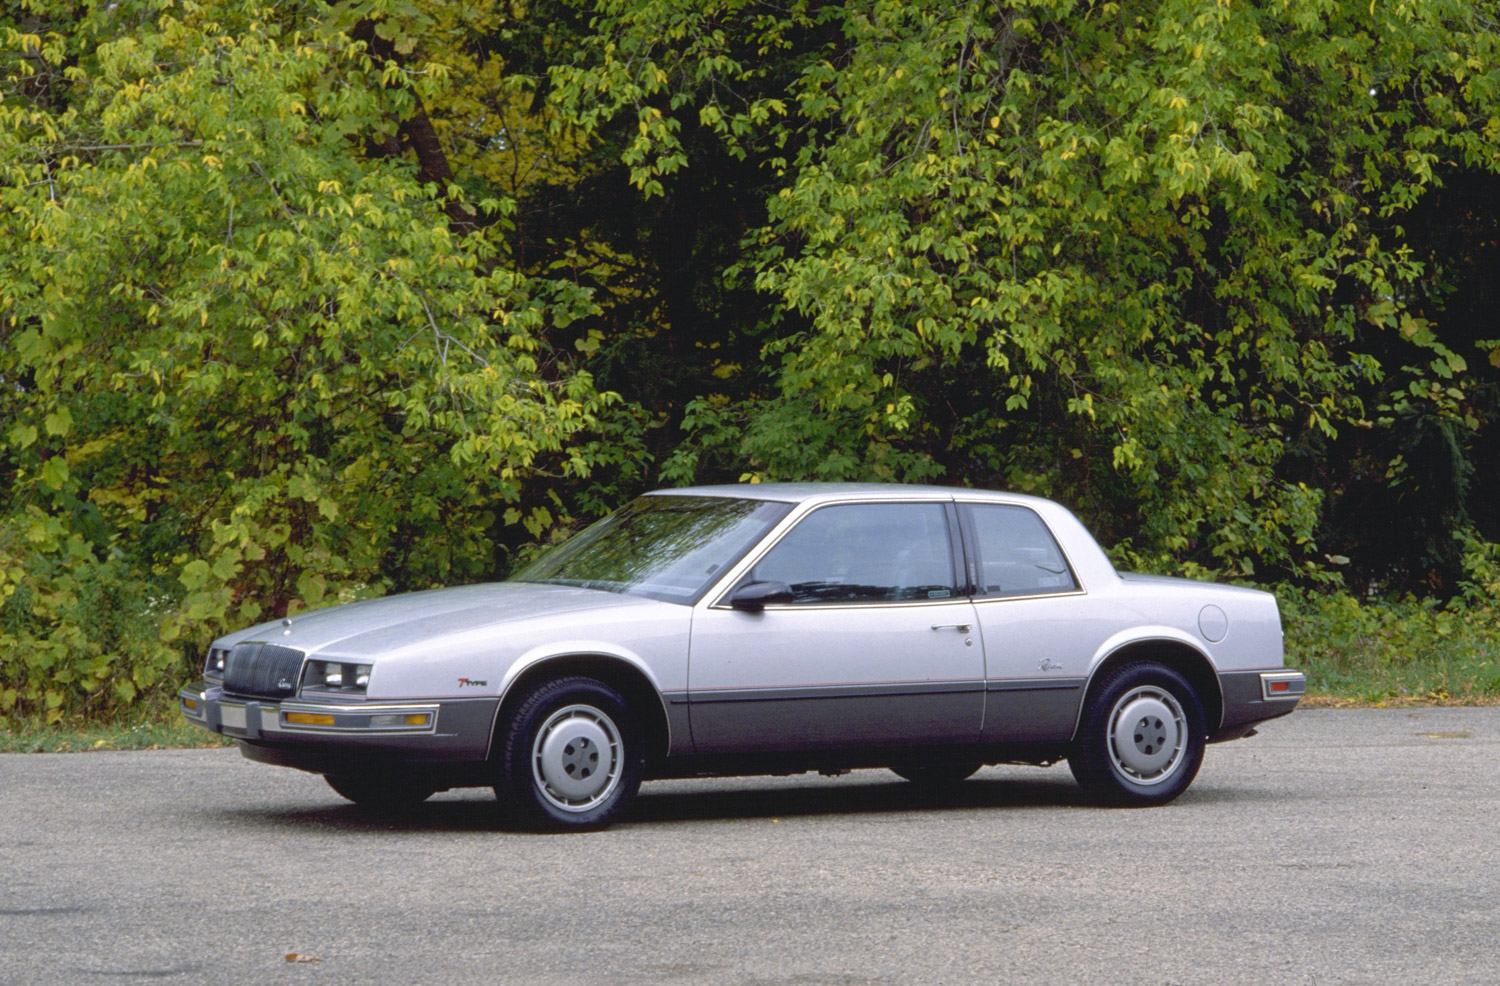 1986 Buick Riviera front side 3/4